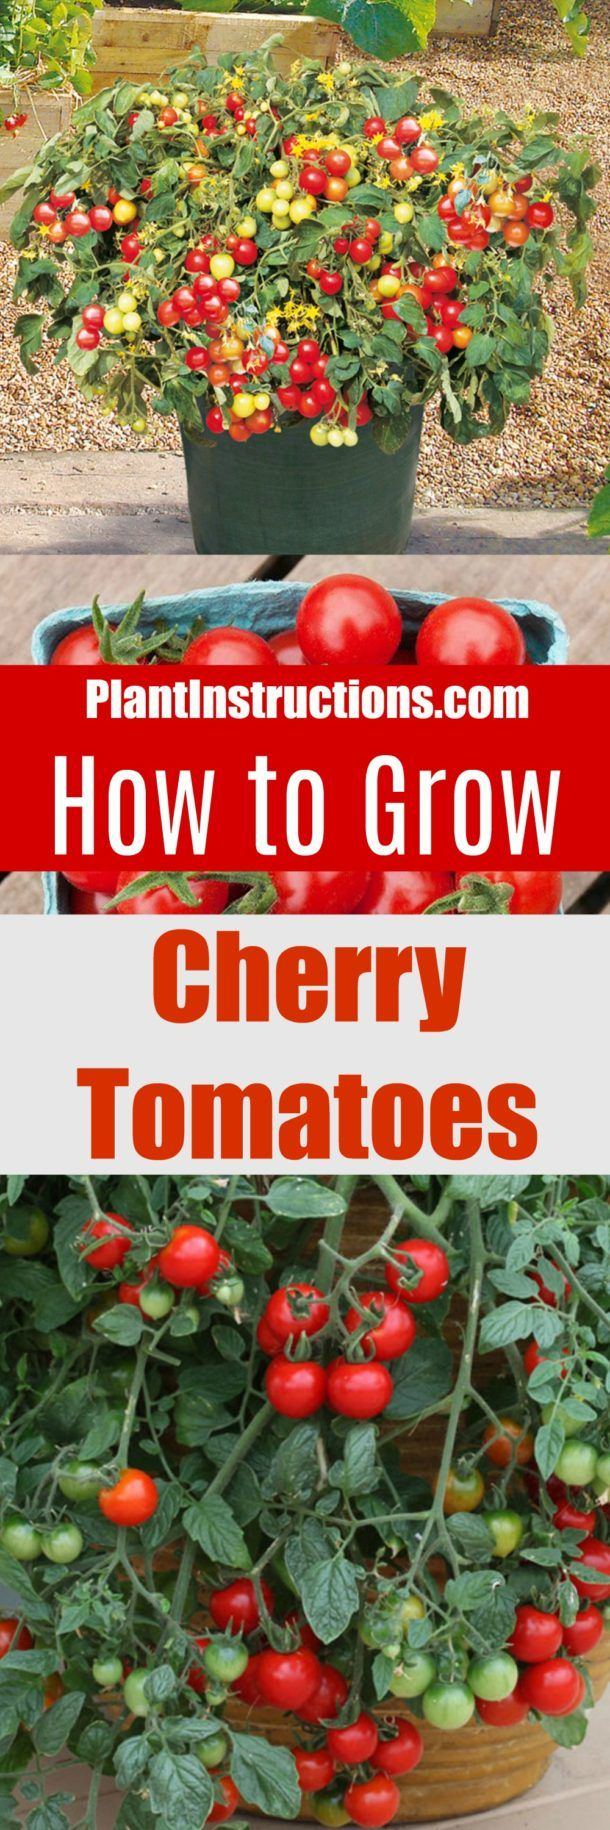 How to Grow Cherry Tomatoes